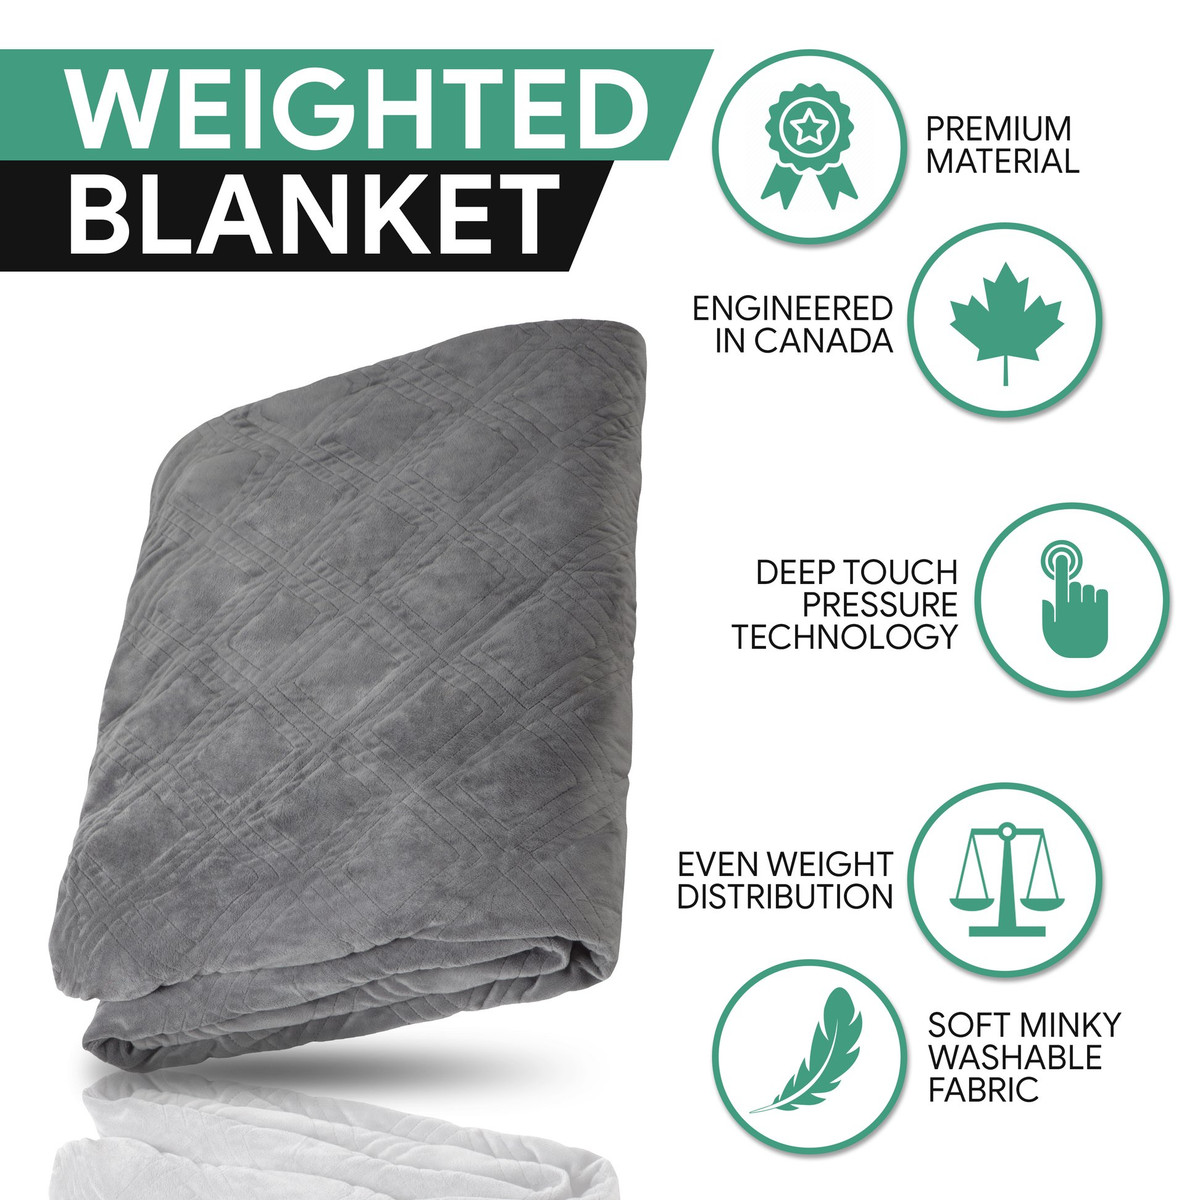 HUSH Classic Blanket with Duvet Cover - King 90x90 - 30 pounds